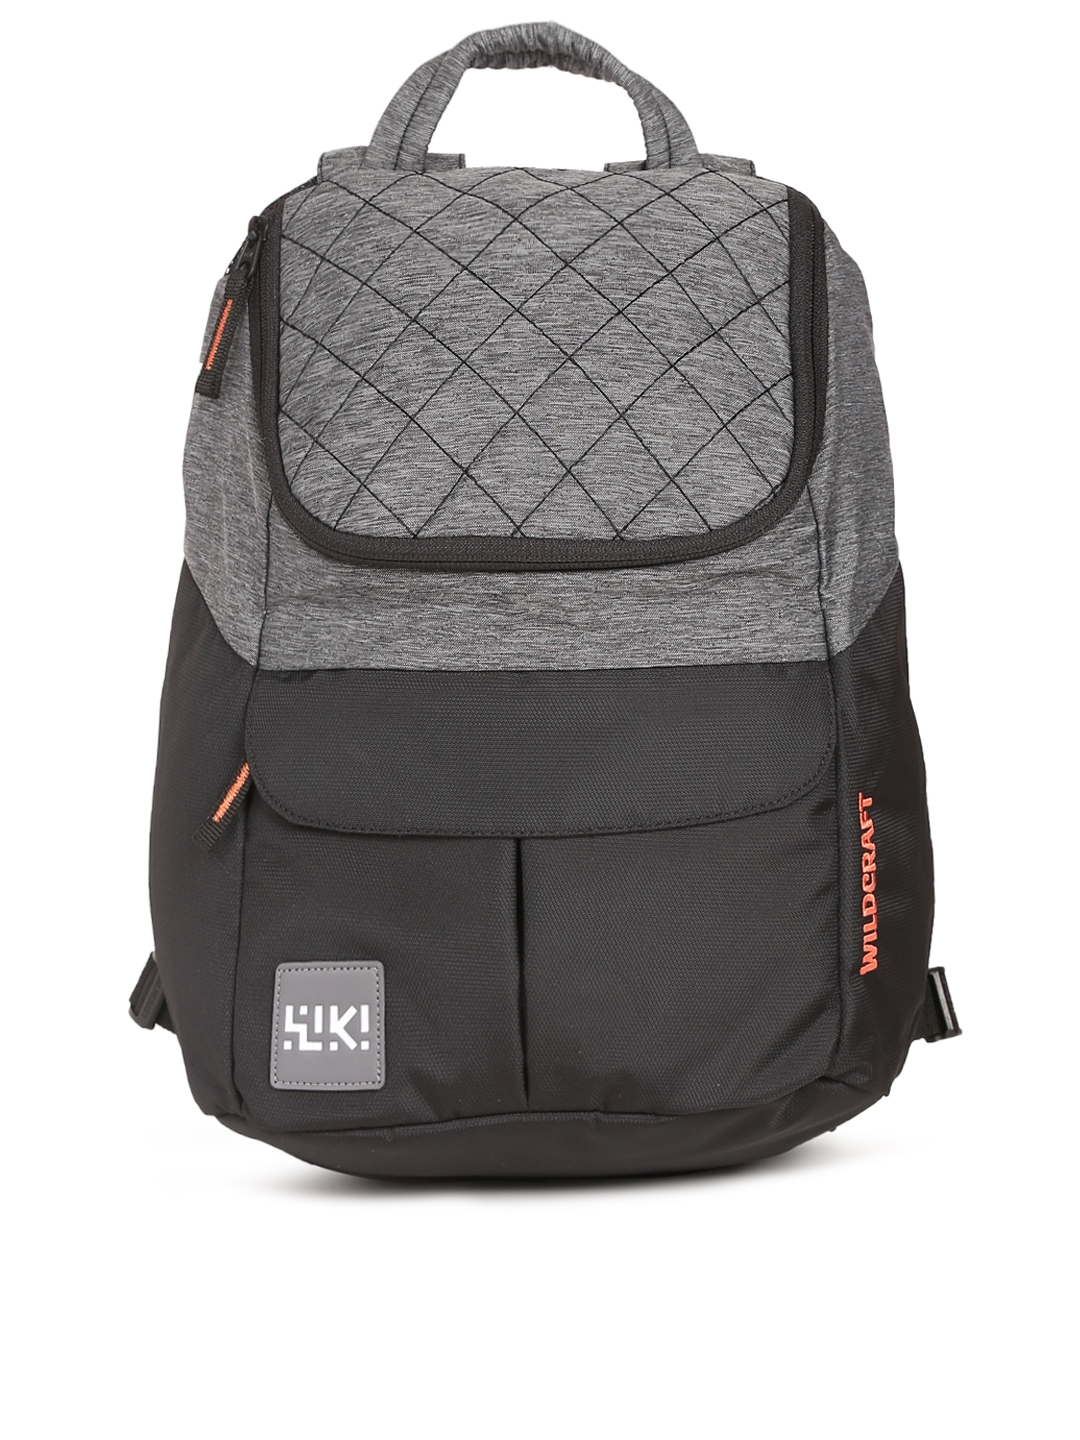 Wildcraft Unisex Grey   Black Mini 1   Wiki Colourblocked Backpack eba1eabe9bd5f